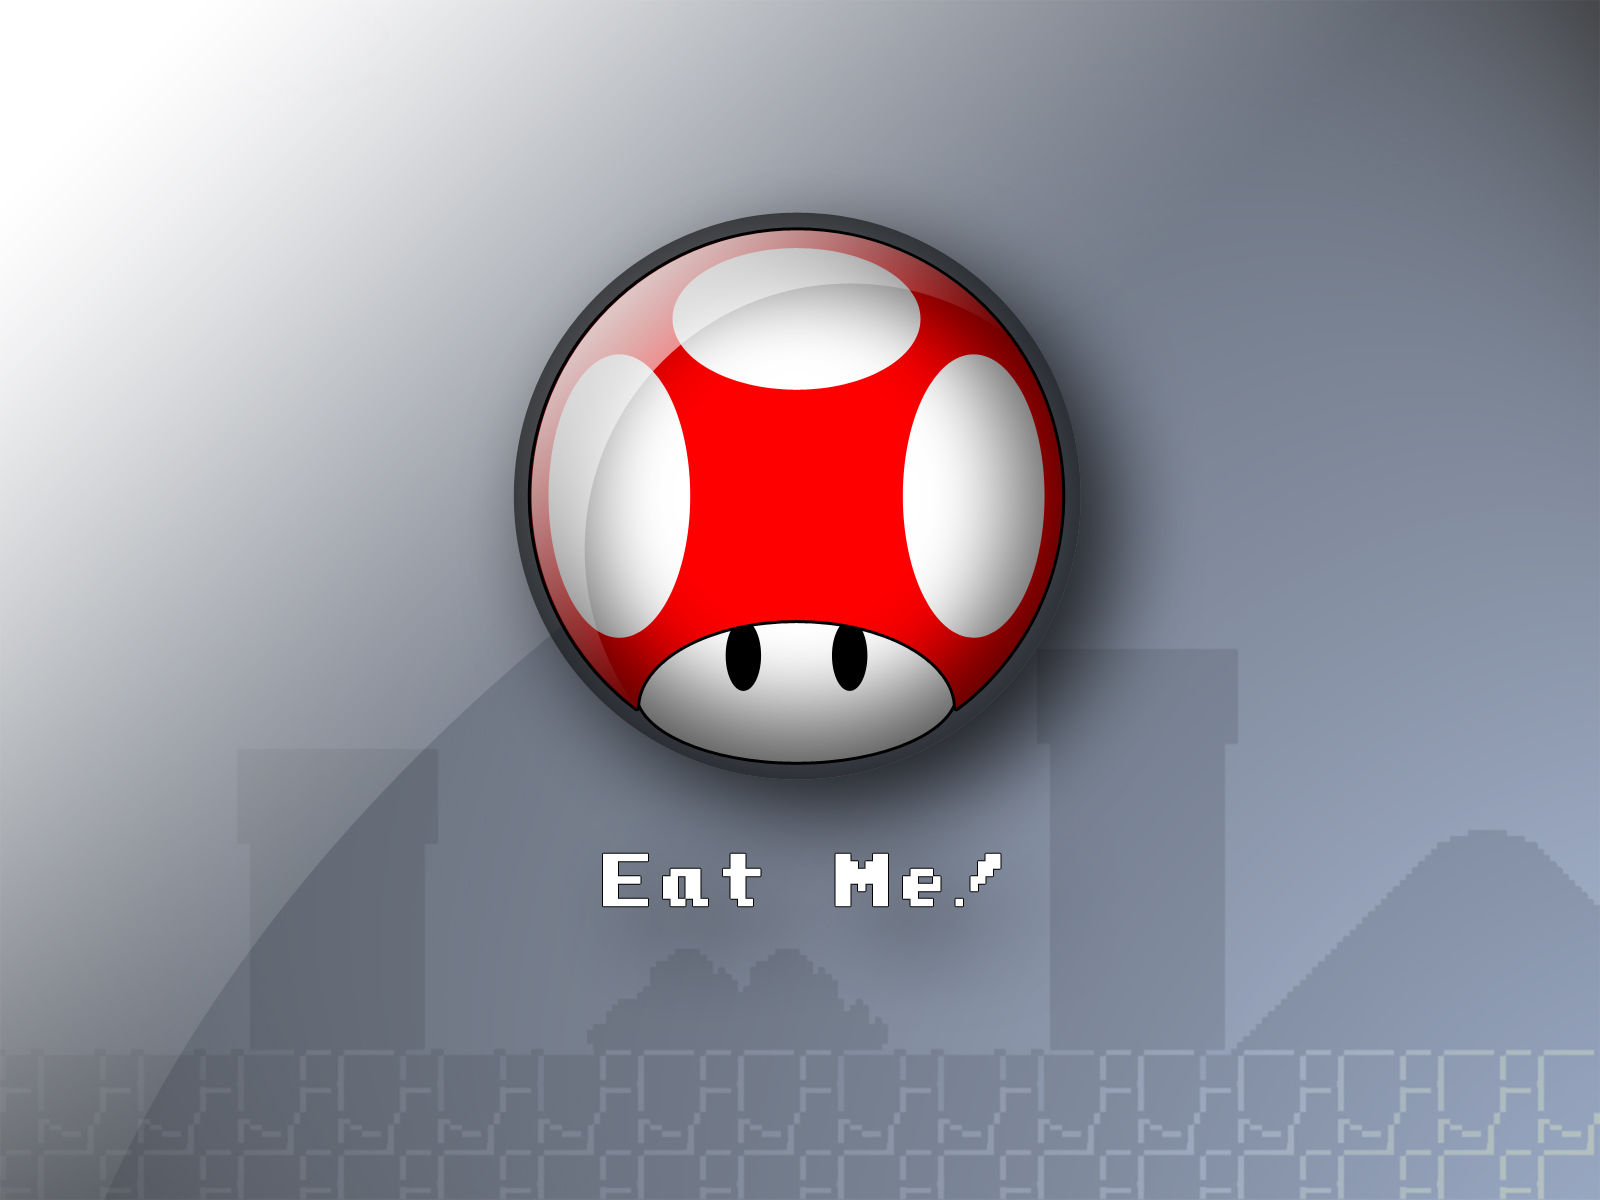 http://1.bp.blogspot.com/-i8XICo7oVyg/UAf2lw1LwQI/AAAAAAAABgI/pOlem3AqNJA/s1600/mario+red+mushroom+eat+me+wallpaper+background+nintendo.jpg